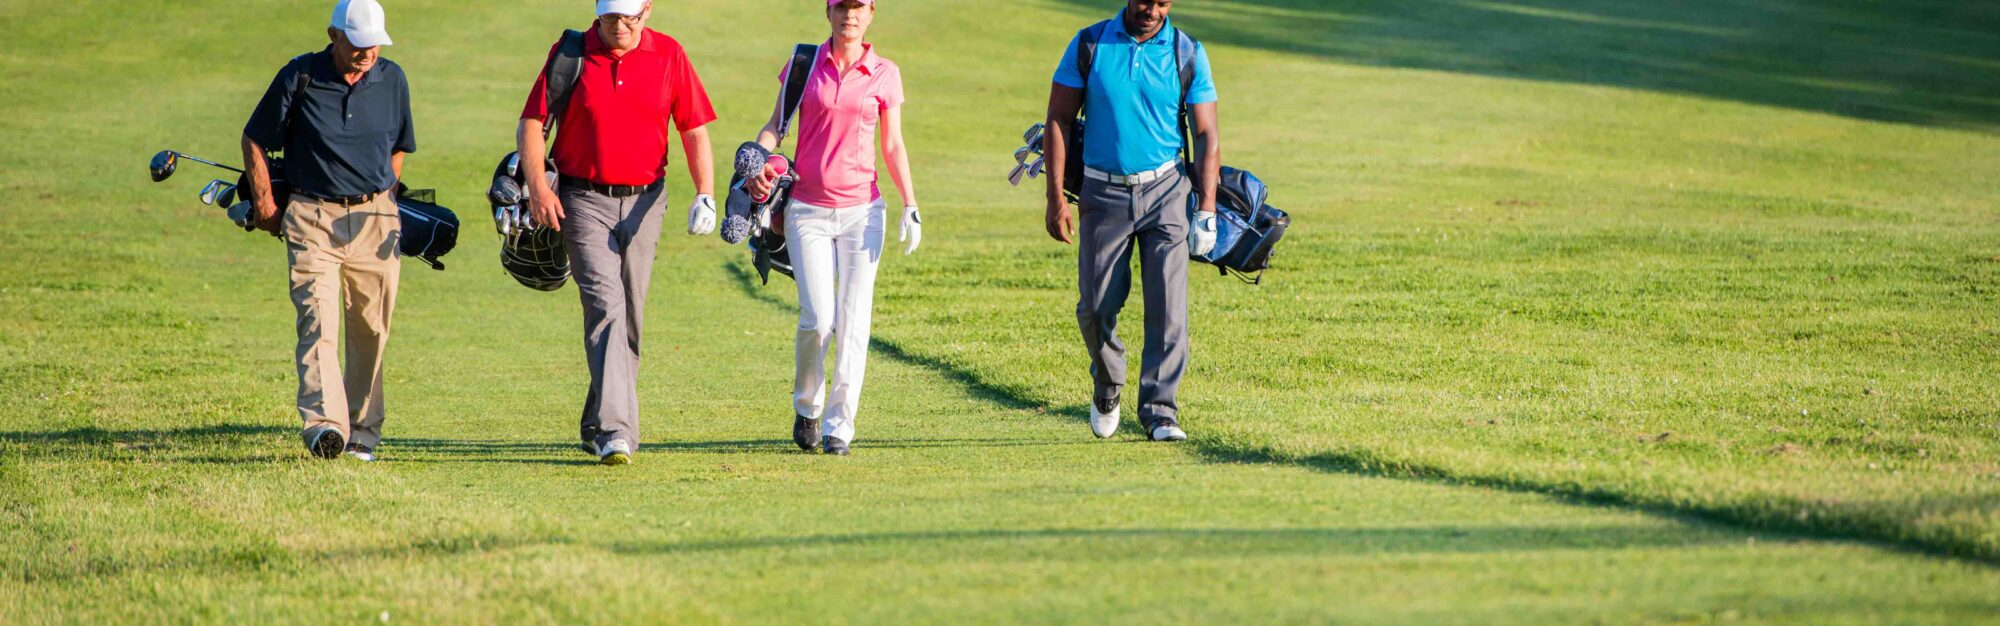 Should all club competitions be mixed gender?